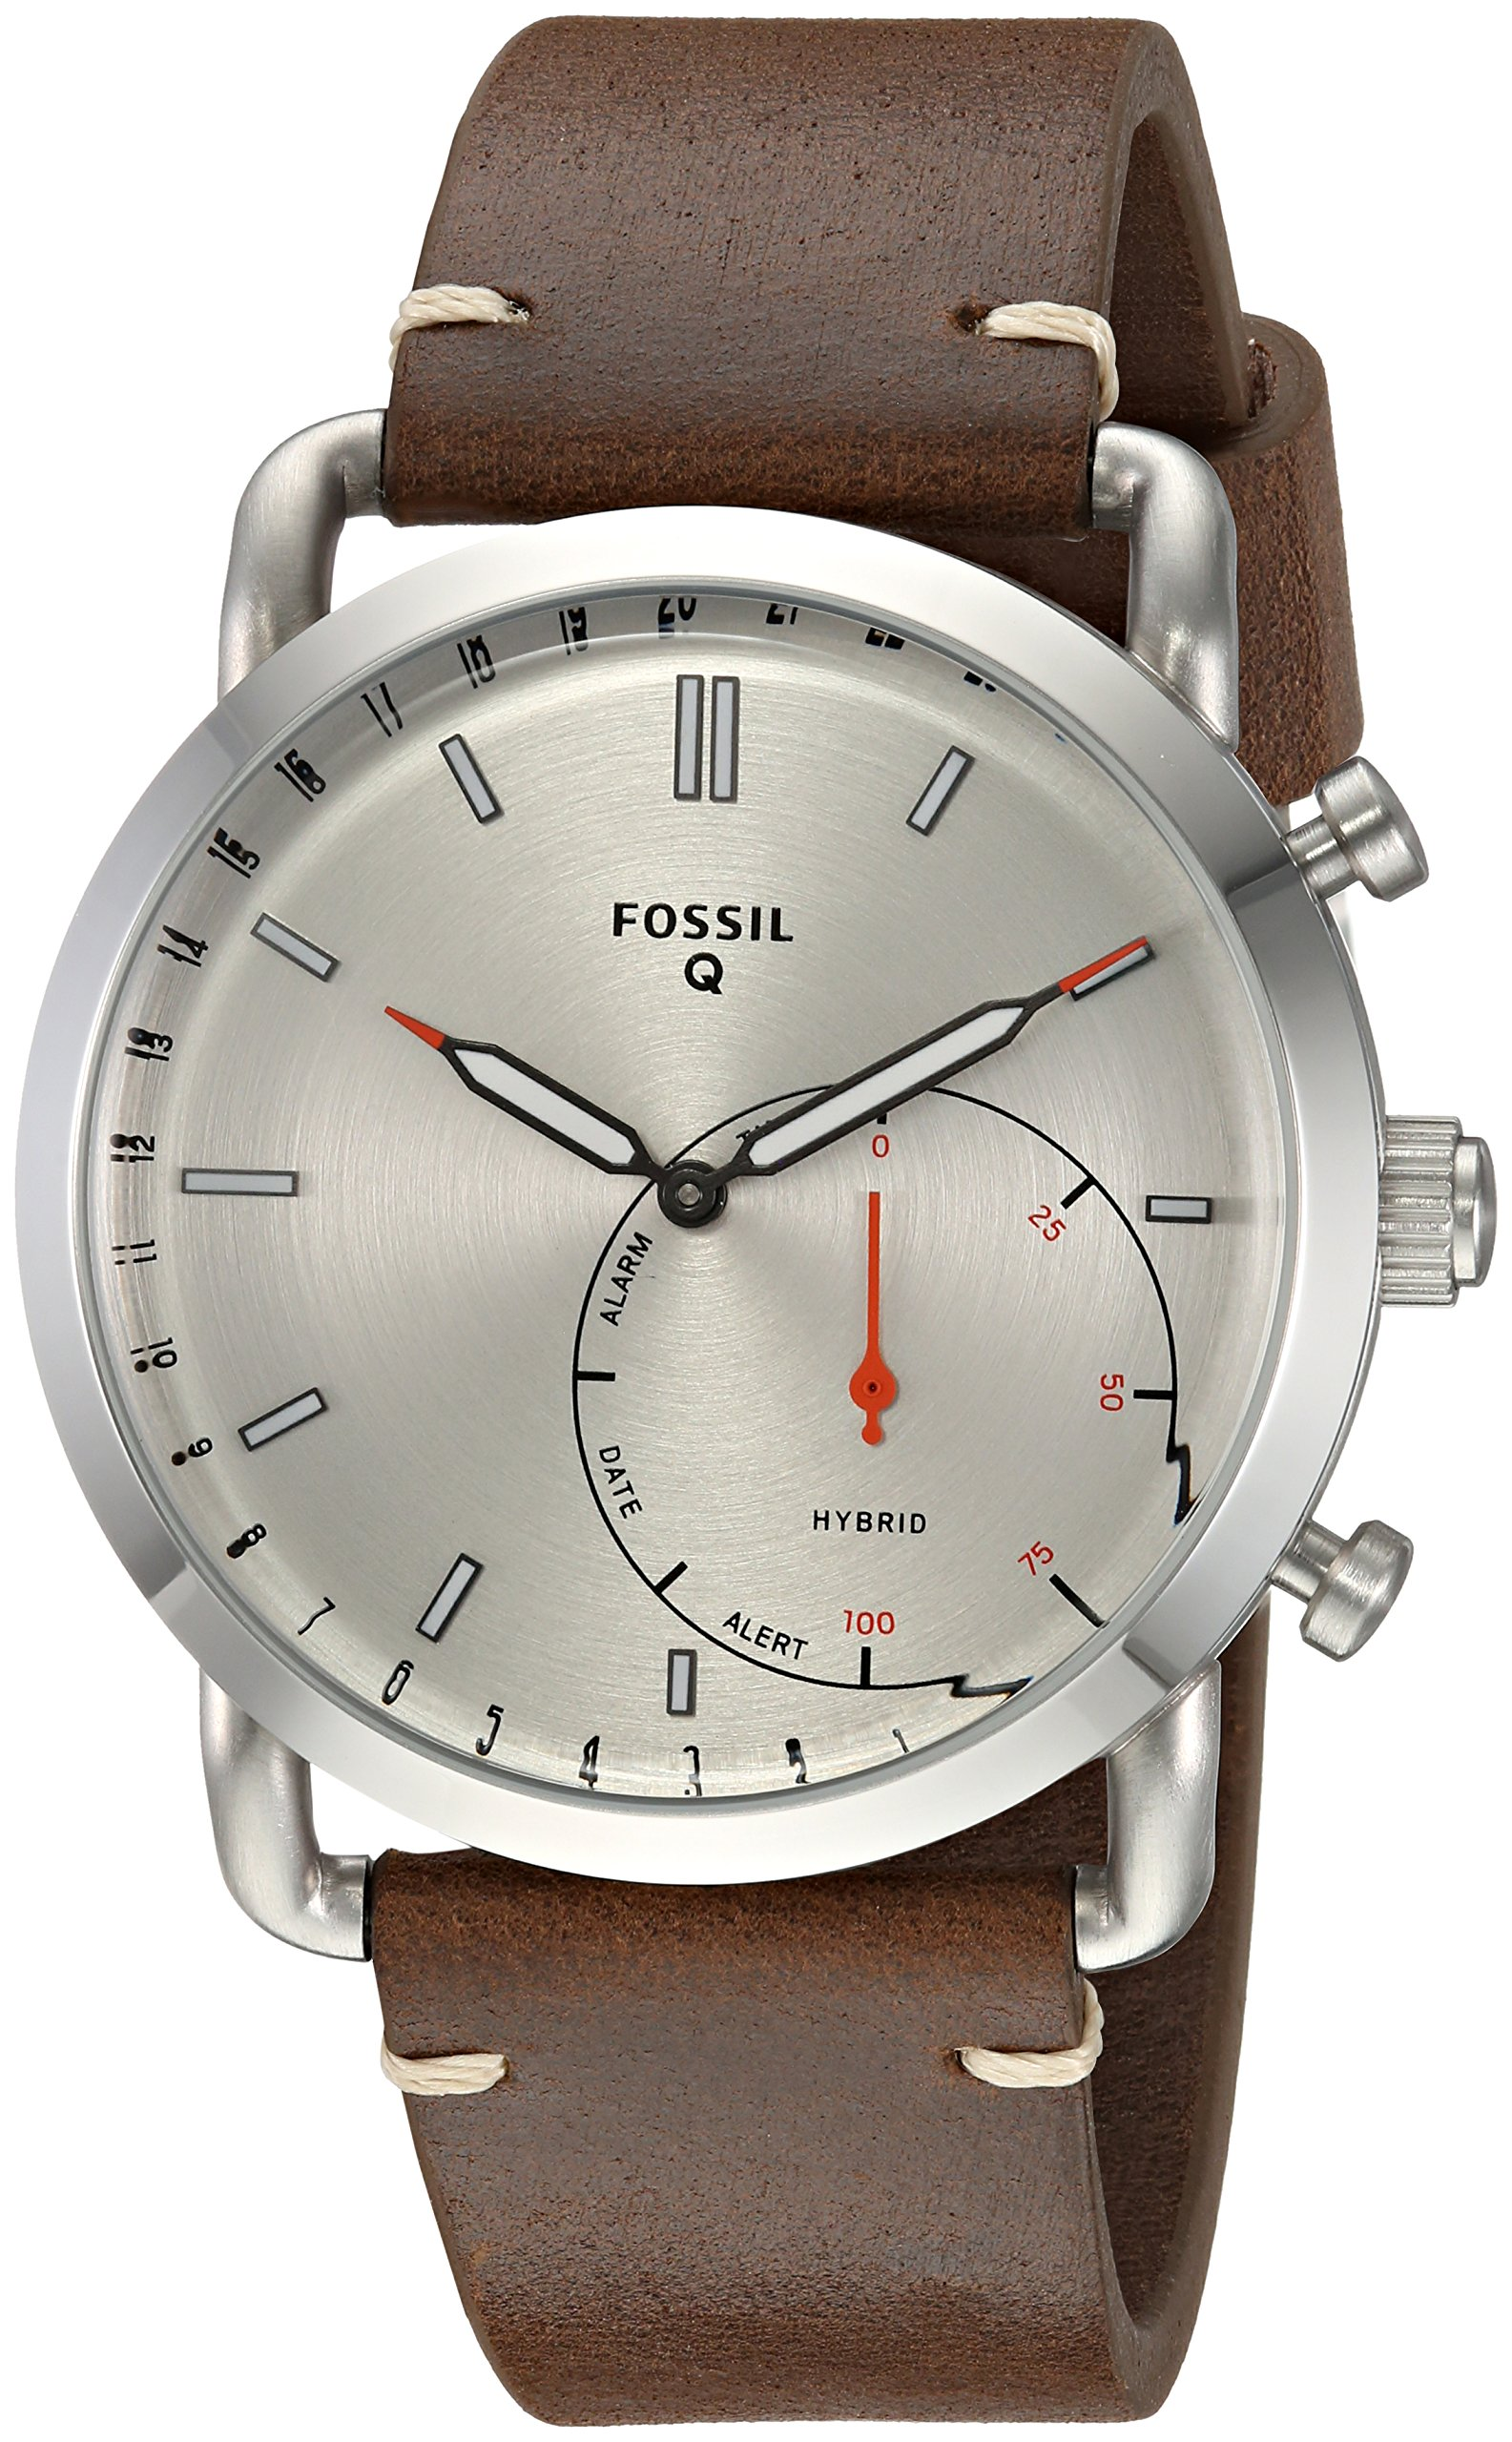 Fossil Hybrid Smartwatch - Q Commuter Dark Brown Leather FTW1150 by Fossil